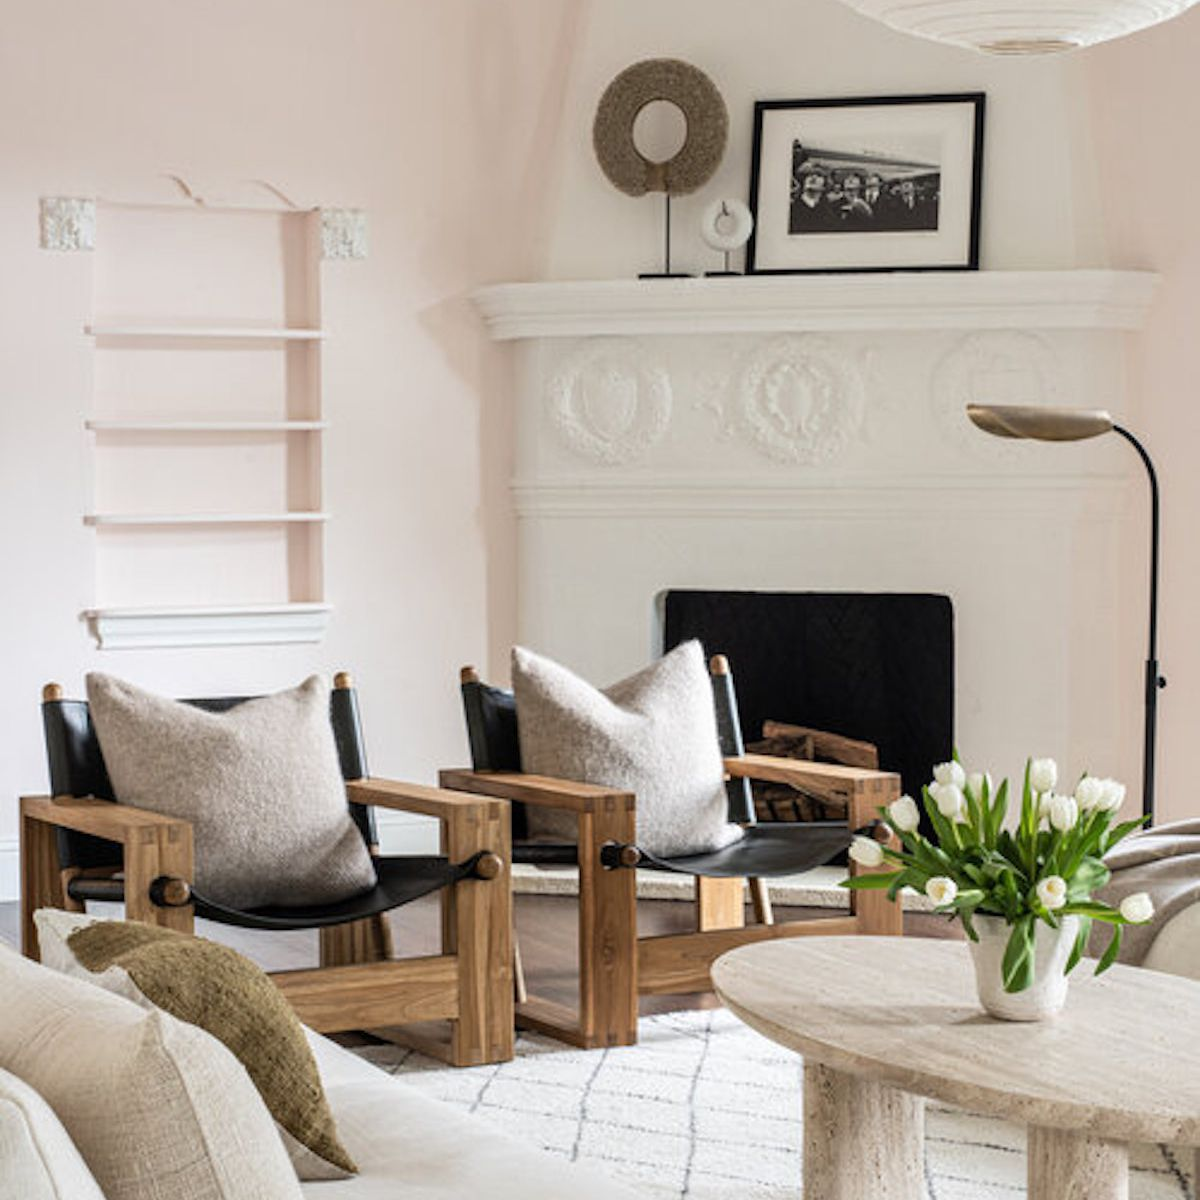 Fresh white tulips on living room coffee table